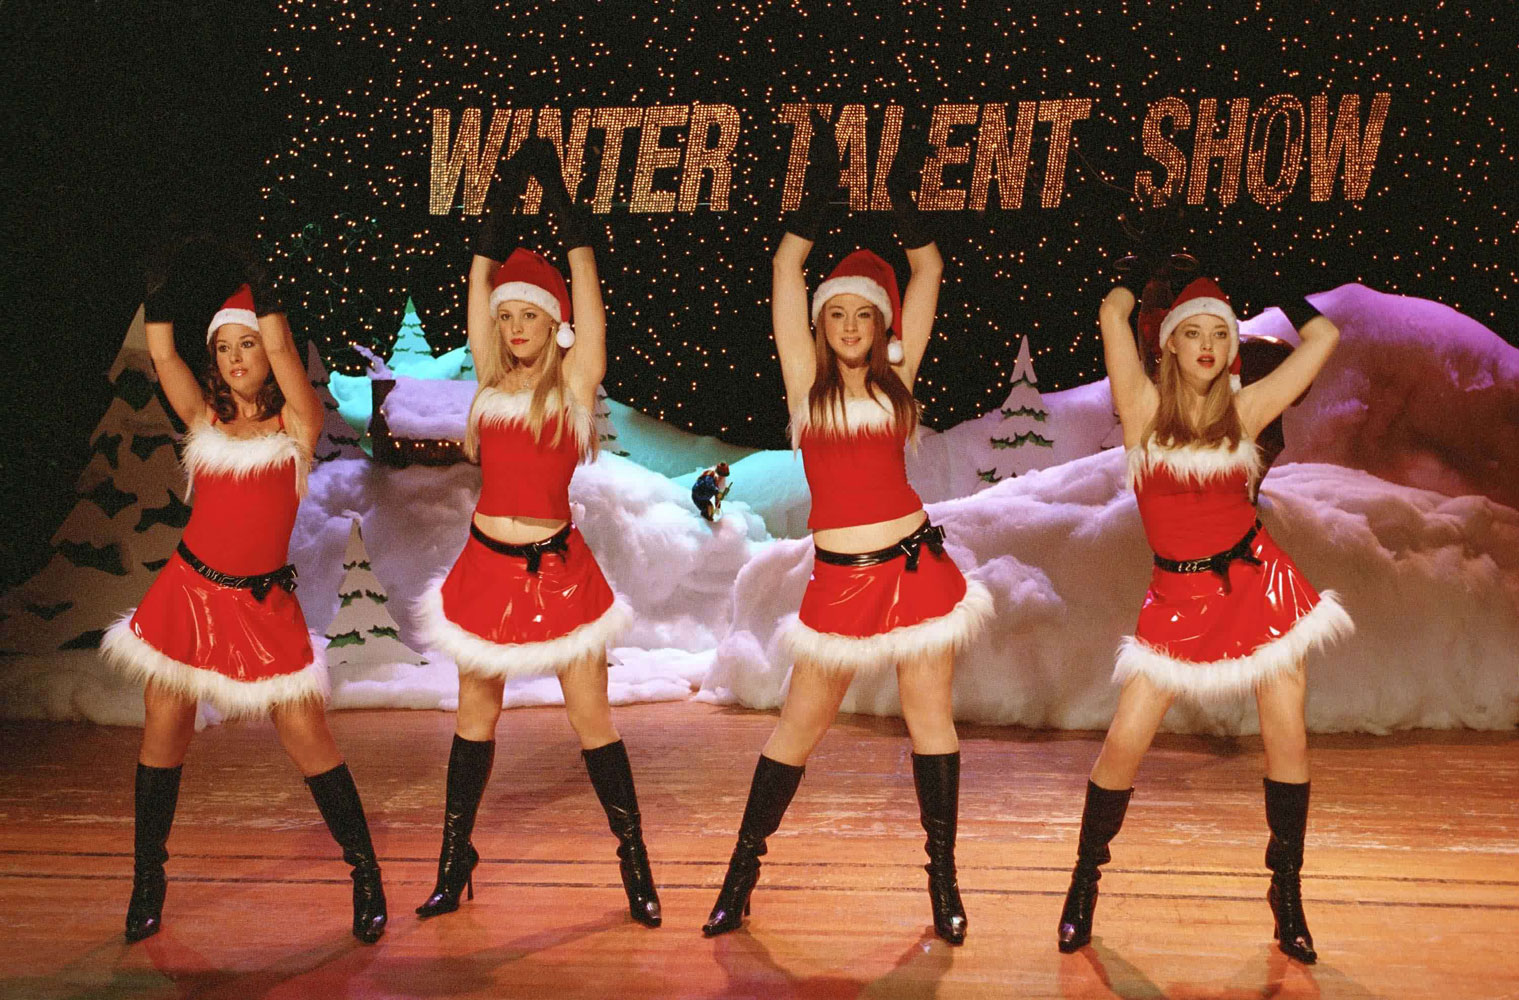 http://2.bp.blogspot.com/-TOJHKX6JED8/TnGEAca3I0I/AAAAAAAAFcU/47UgryGa2rU/s1600/meangirls+jingle+bell+rock+skit+hot.jpg